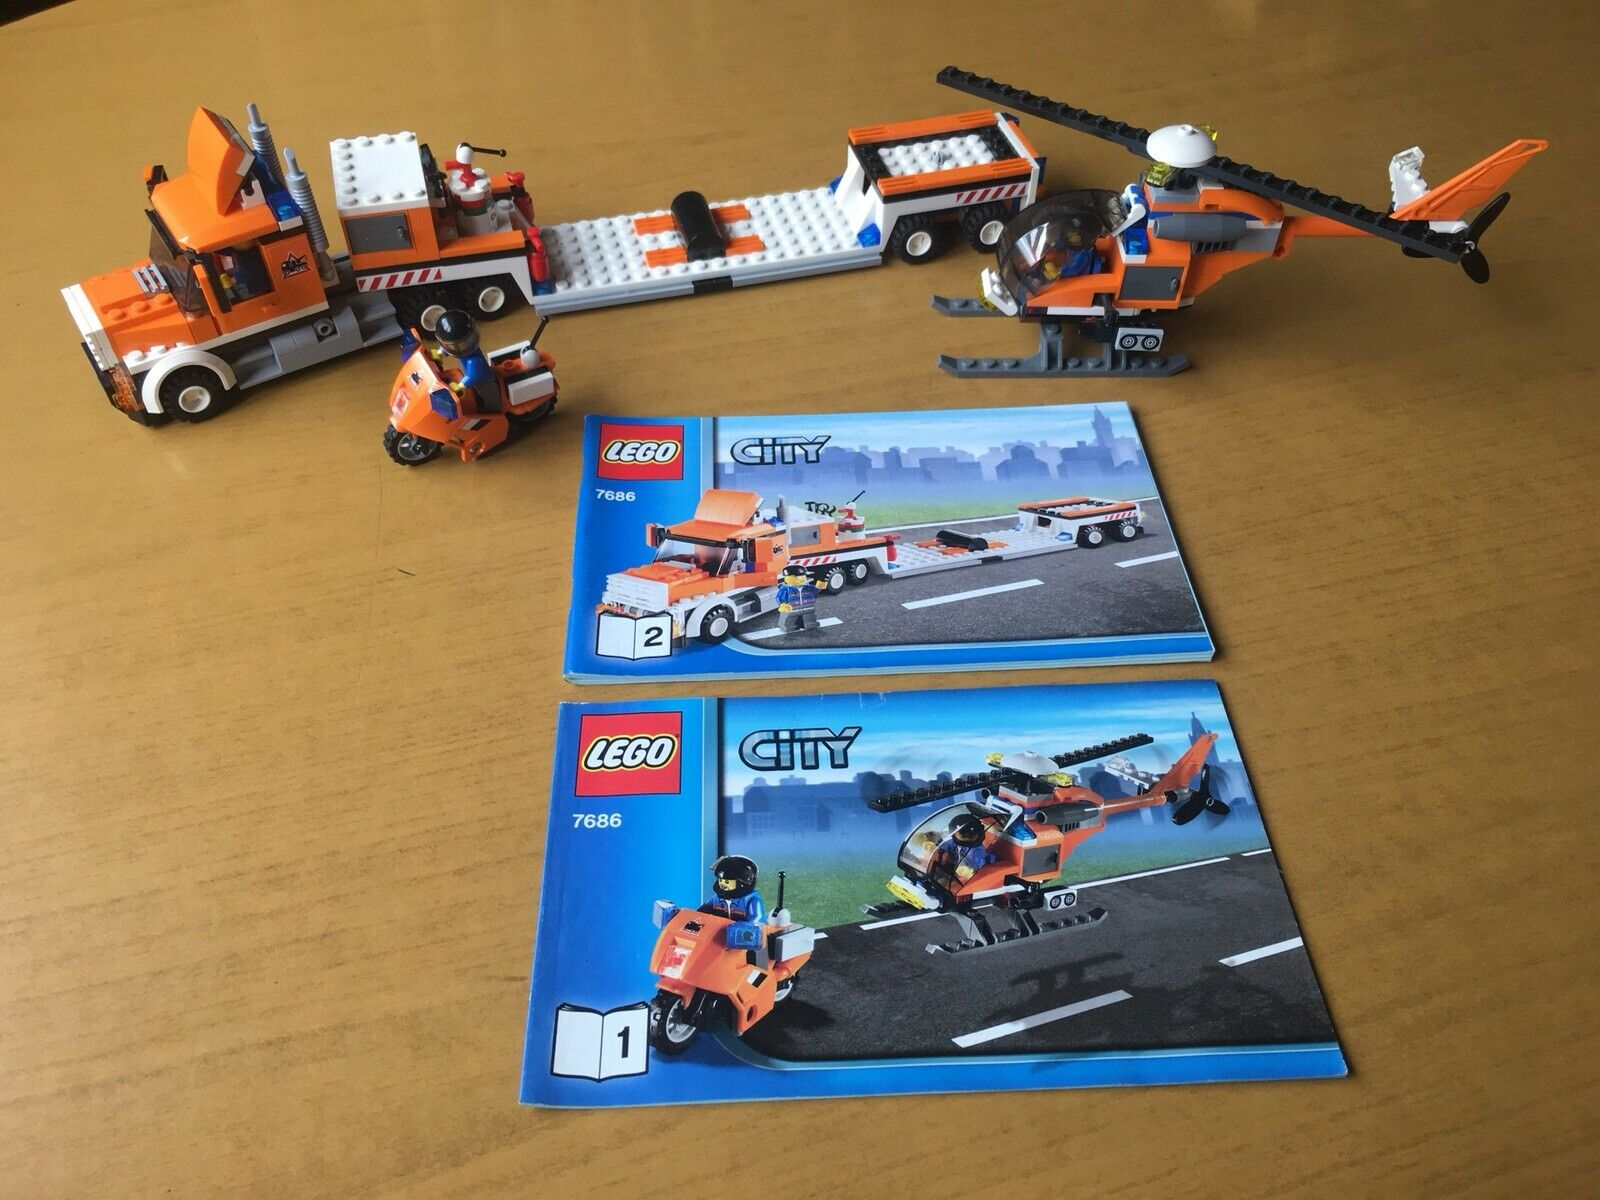 Con 100% de calidad y servicio de% 100. Lego City (7686) (7686) (7686) Helicopter Transporter Excellent Condition  a la venta